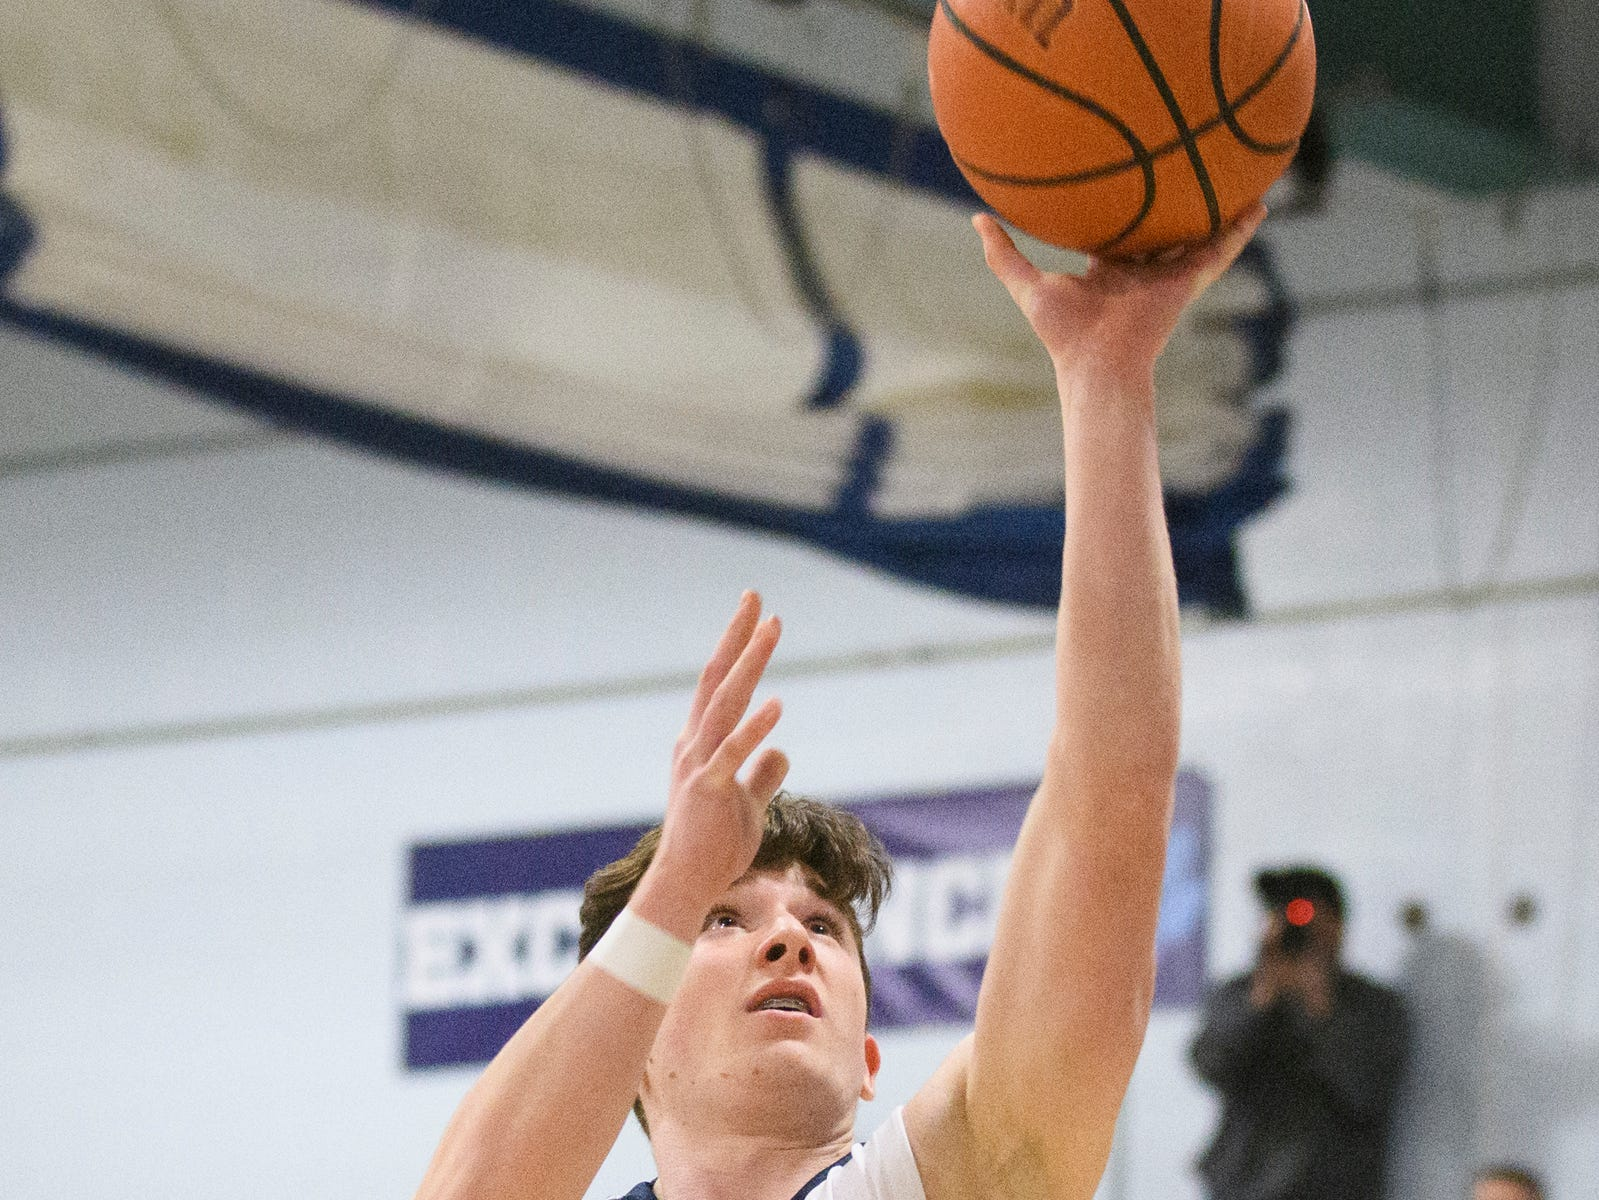 MMU's Mike Dix (14) leaps for a lay up during the boys basketball game between the Essex Hornets and the Mount Mansfield Cougars at MMU High School on Wednesday night February 13, 2019 in Jericho, Vermont.